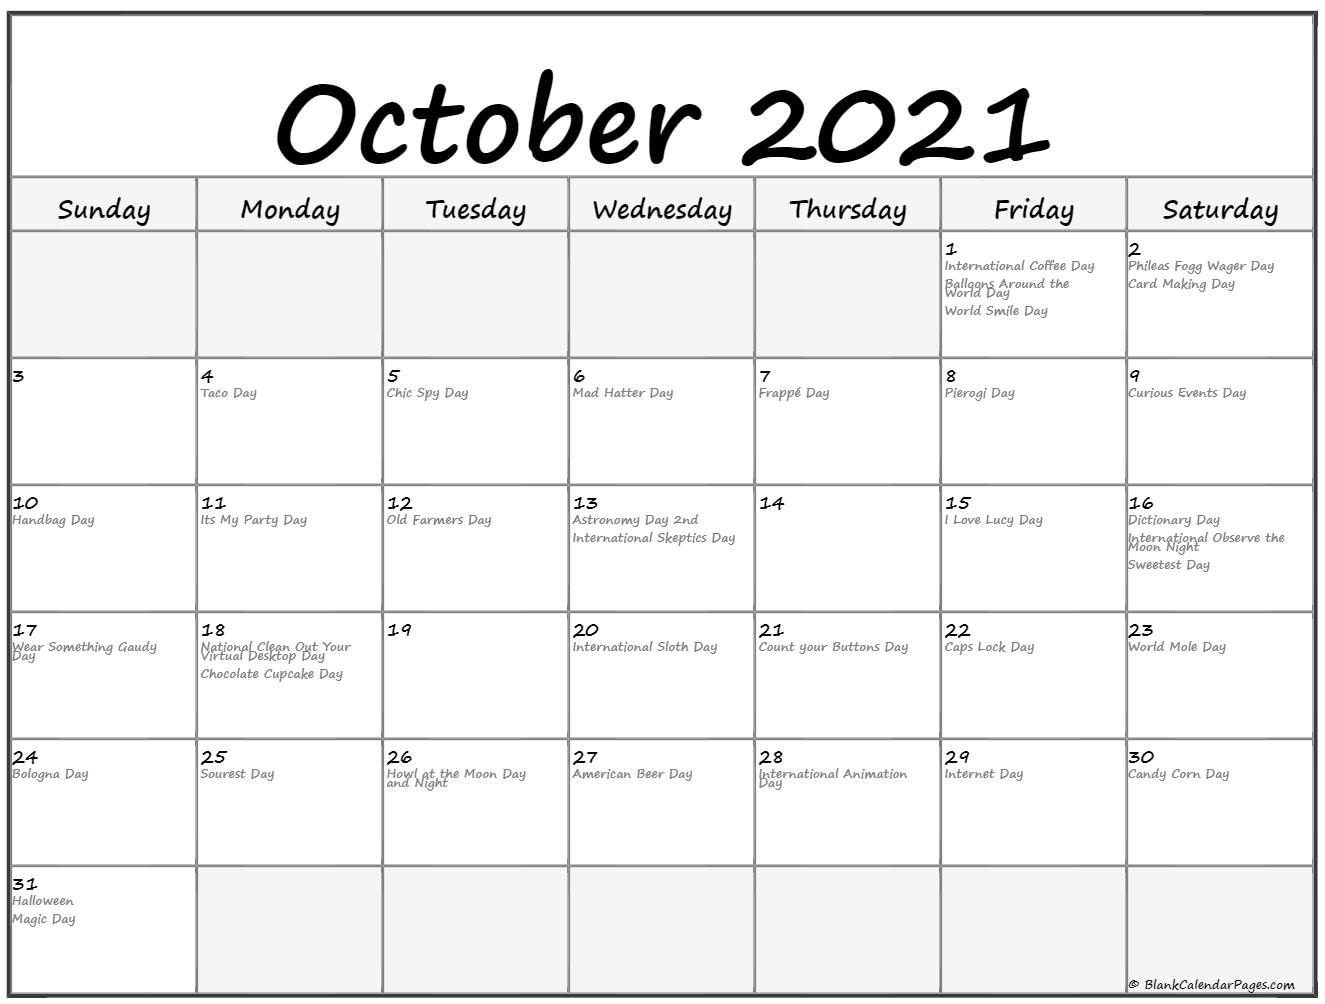 October 2021 calendar with funny holidays